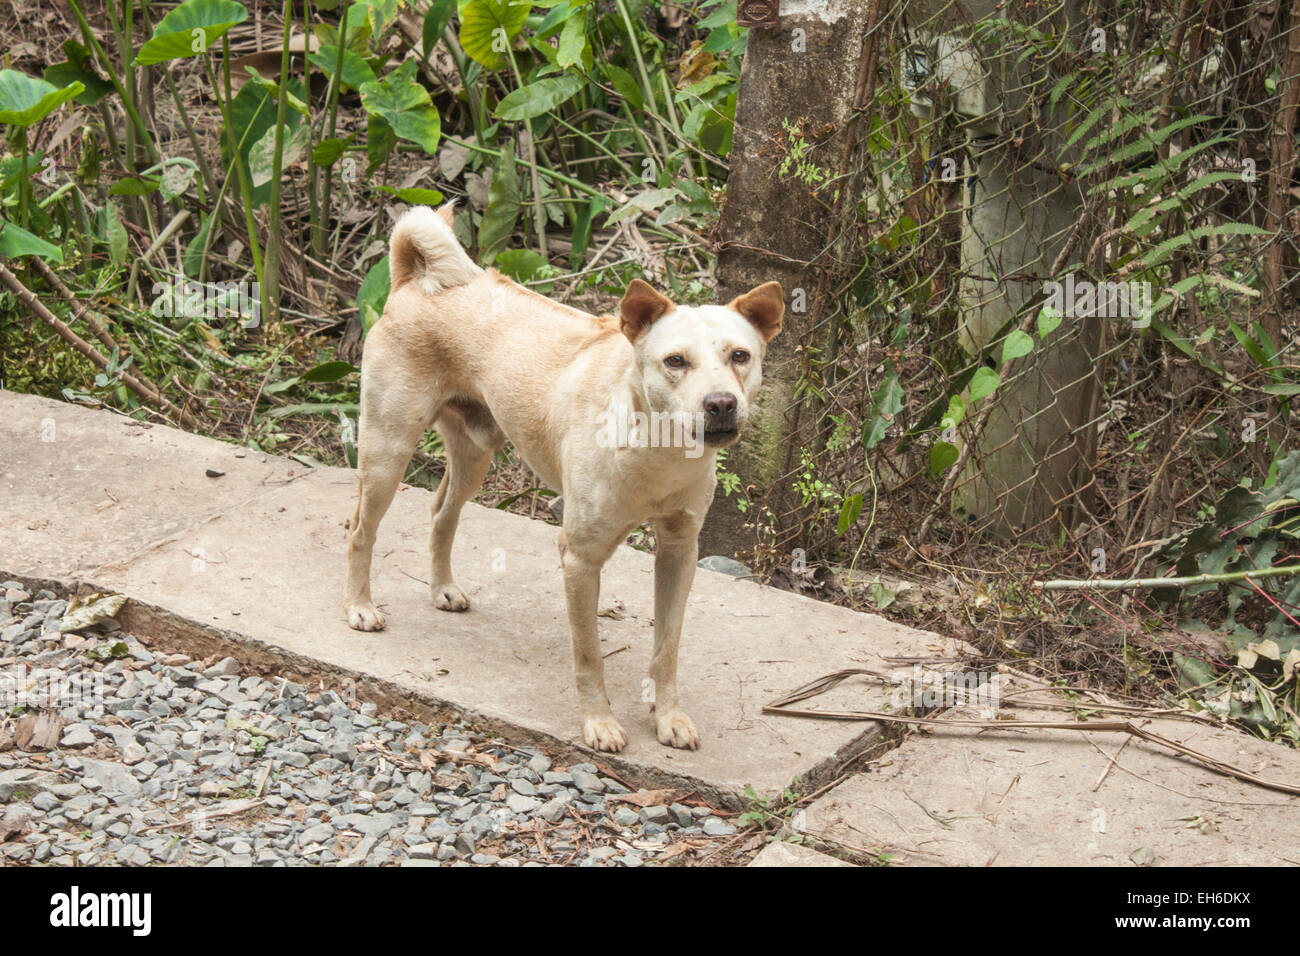 A wild, angry dog, on a road, in the jungle - Stock Image